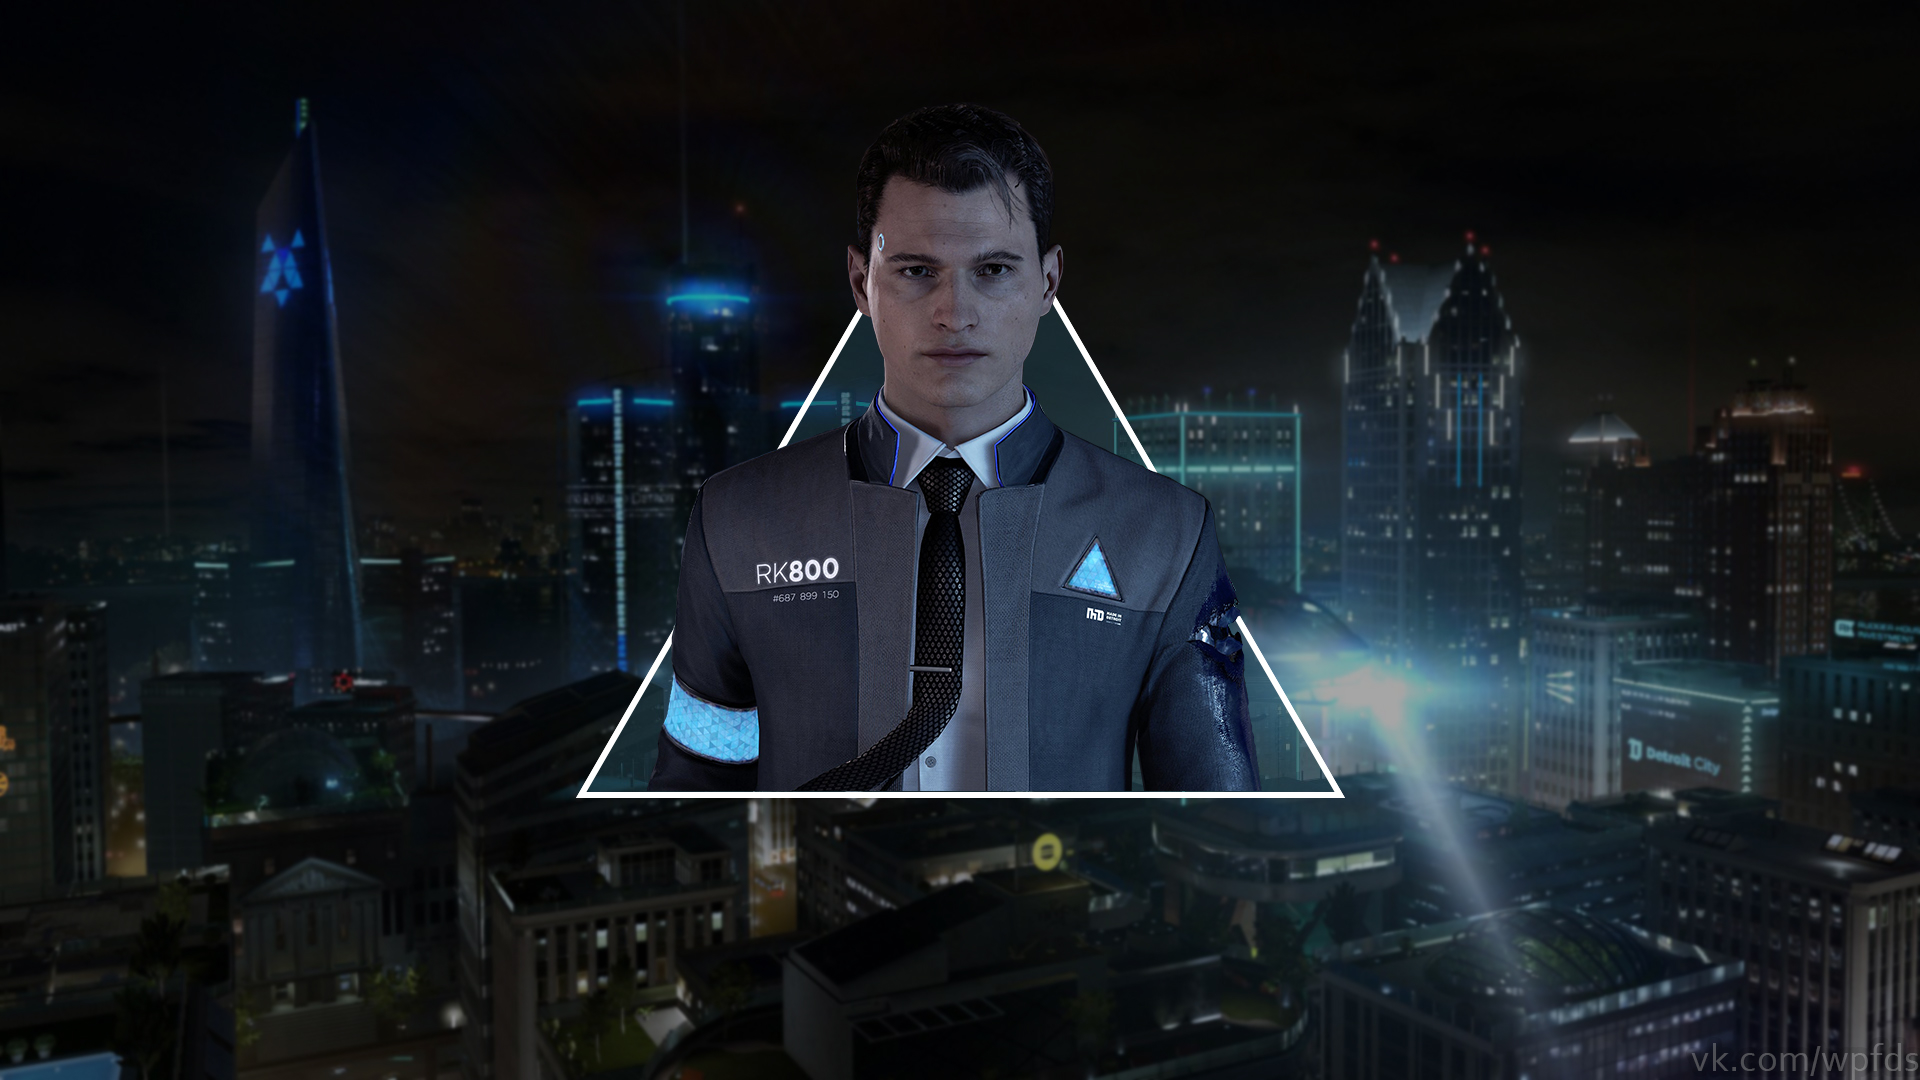 Detroit Become Human Wallpaper Hd Games 4k Wallpapers Images